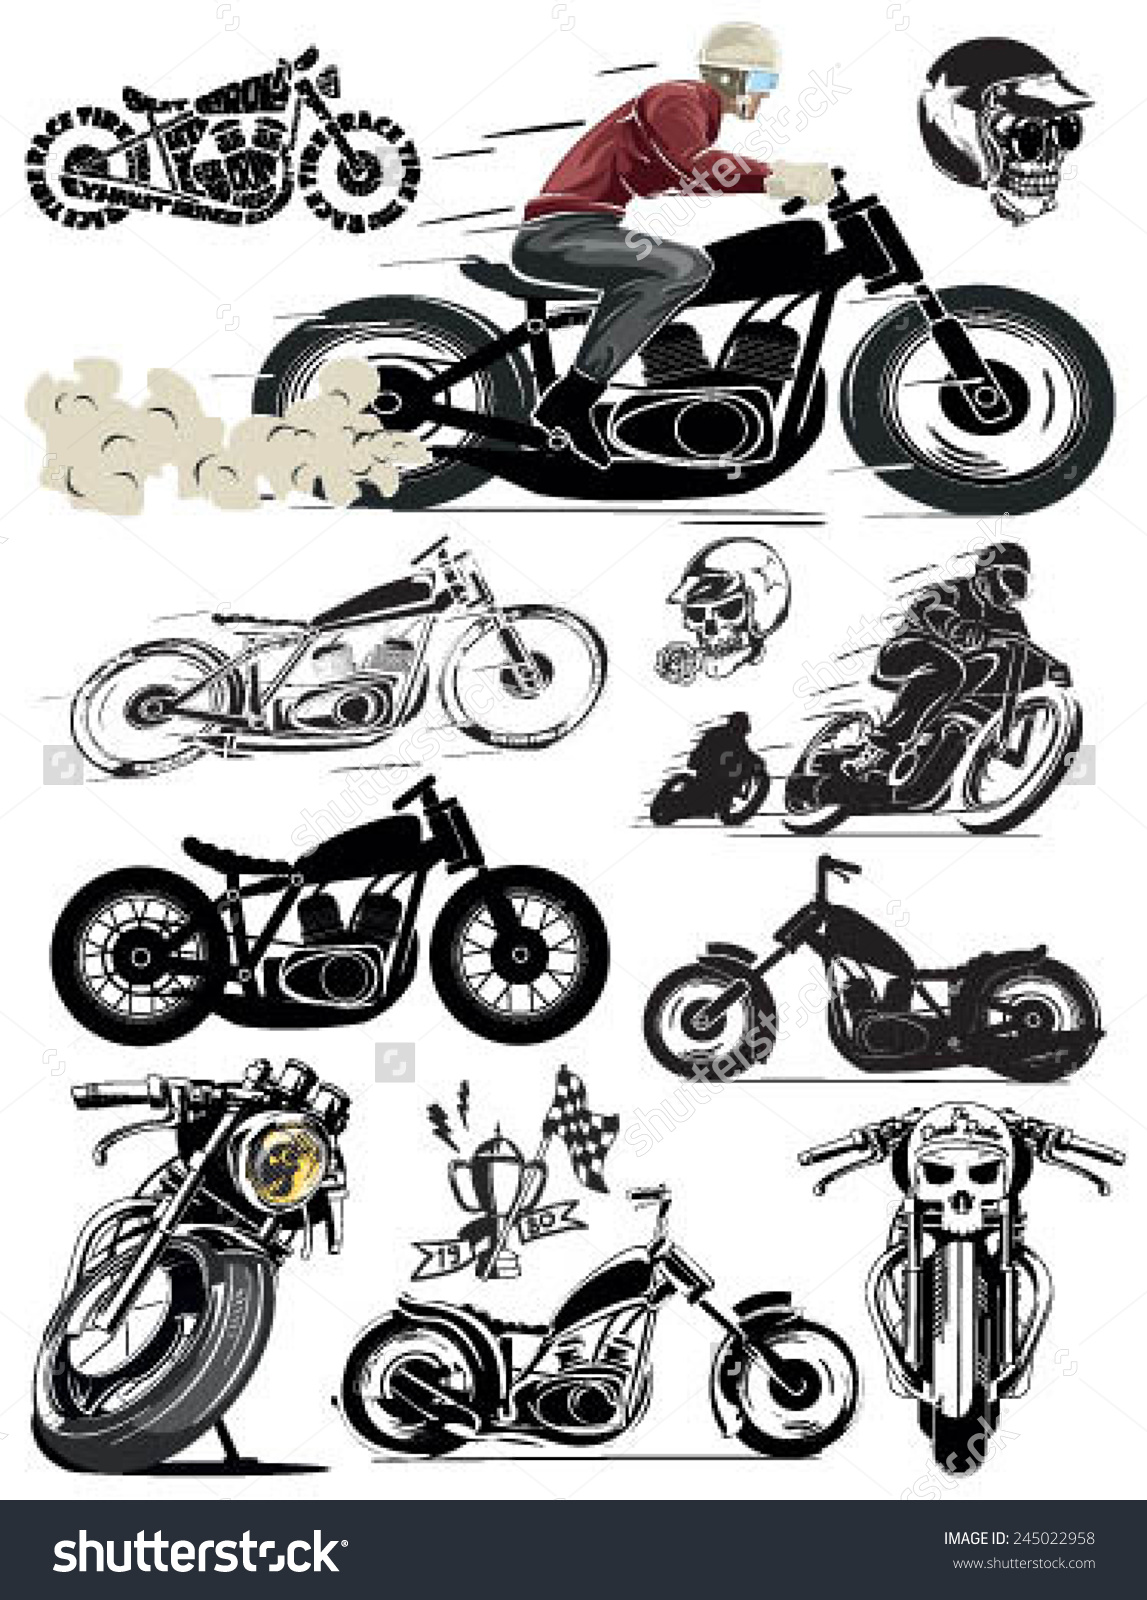 Historic motorcycle clipart #12